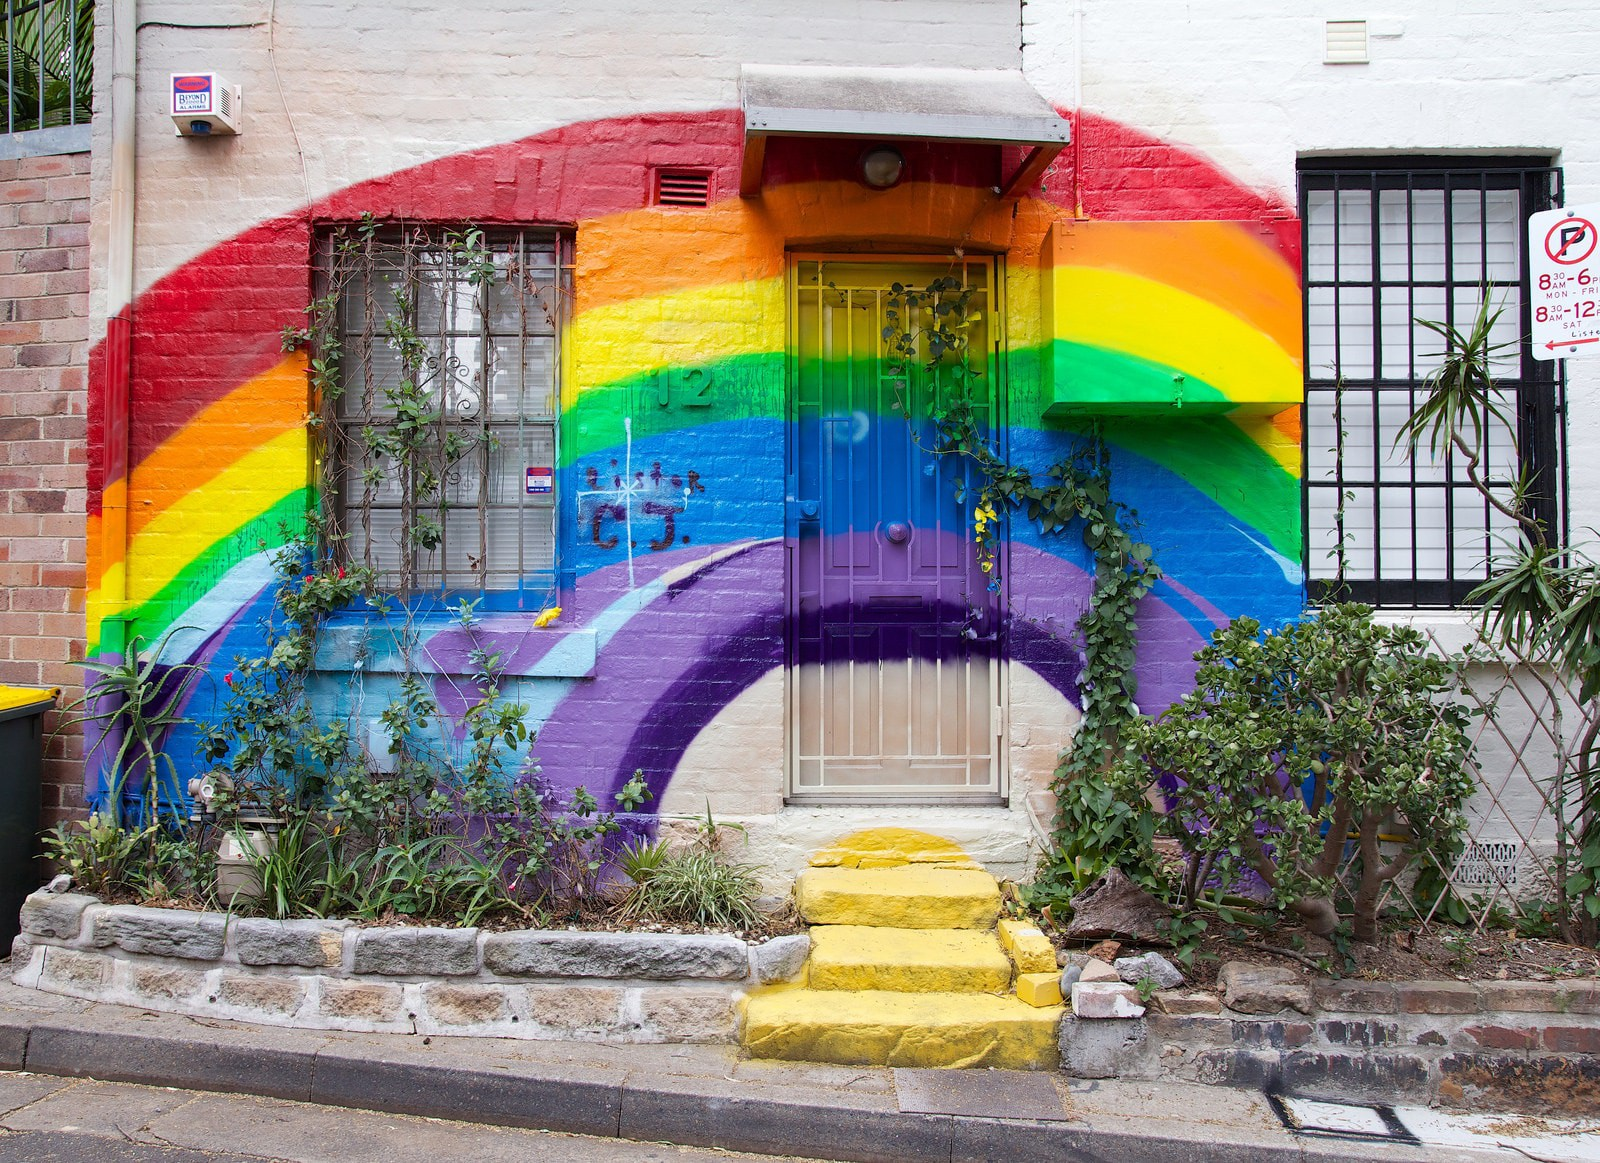 Rainbow mural on a terrace house in Surry Hills